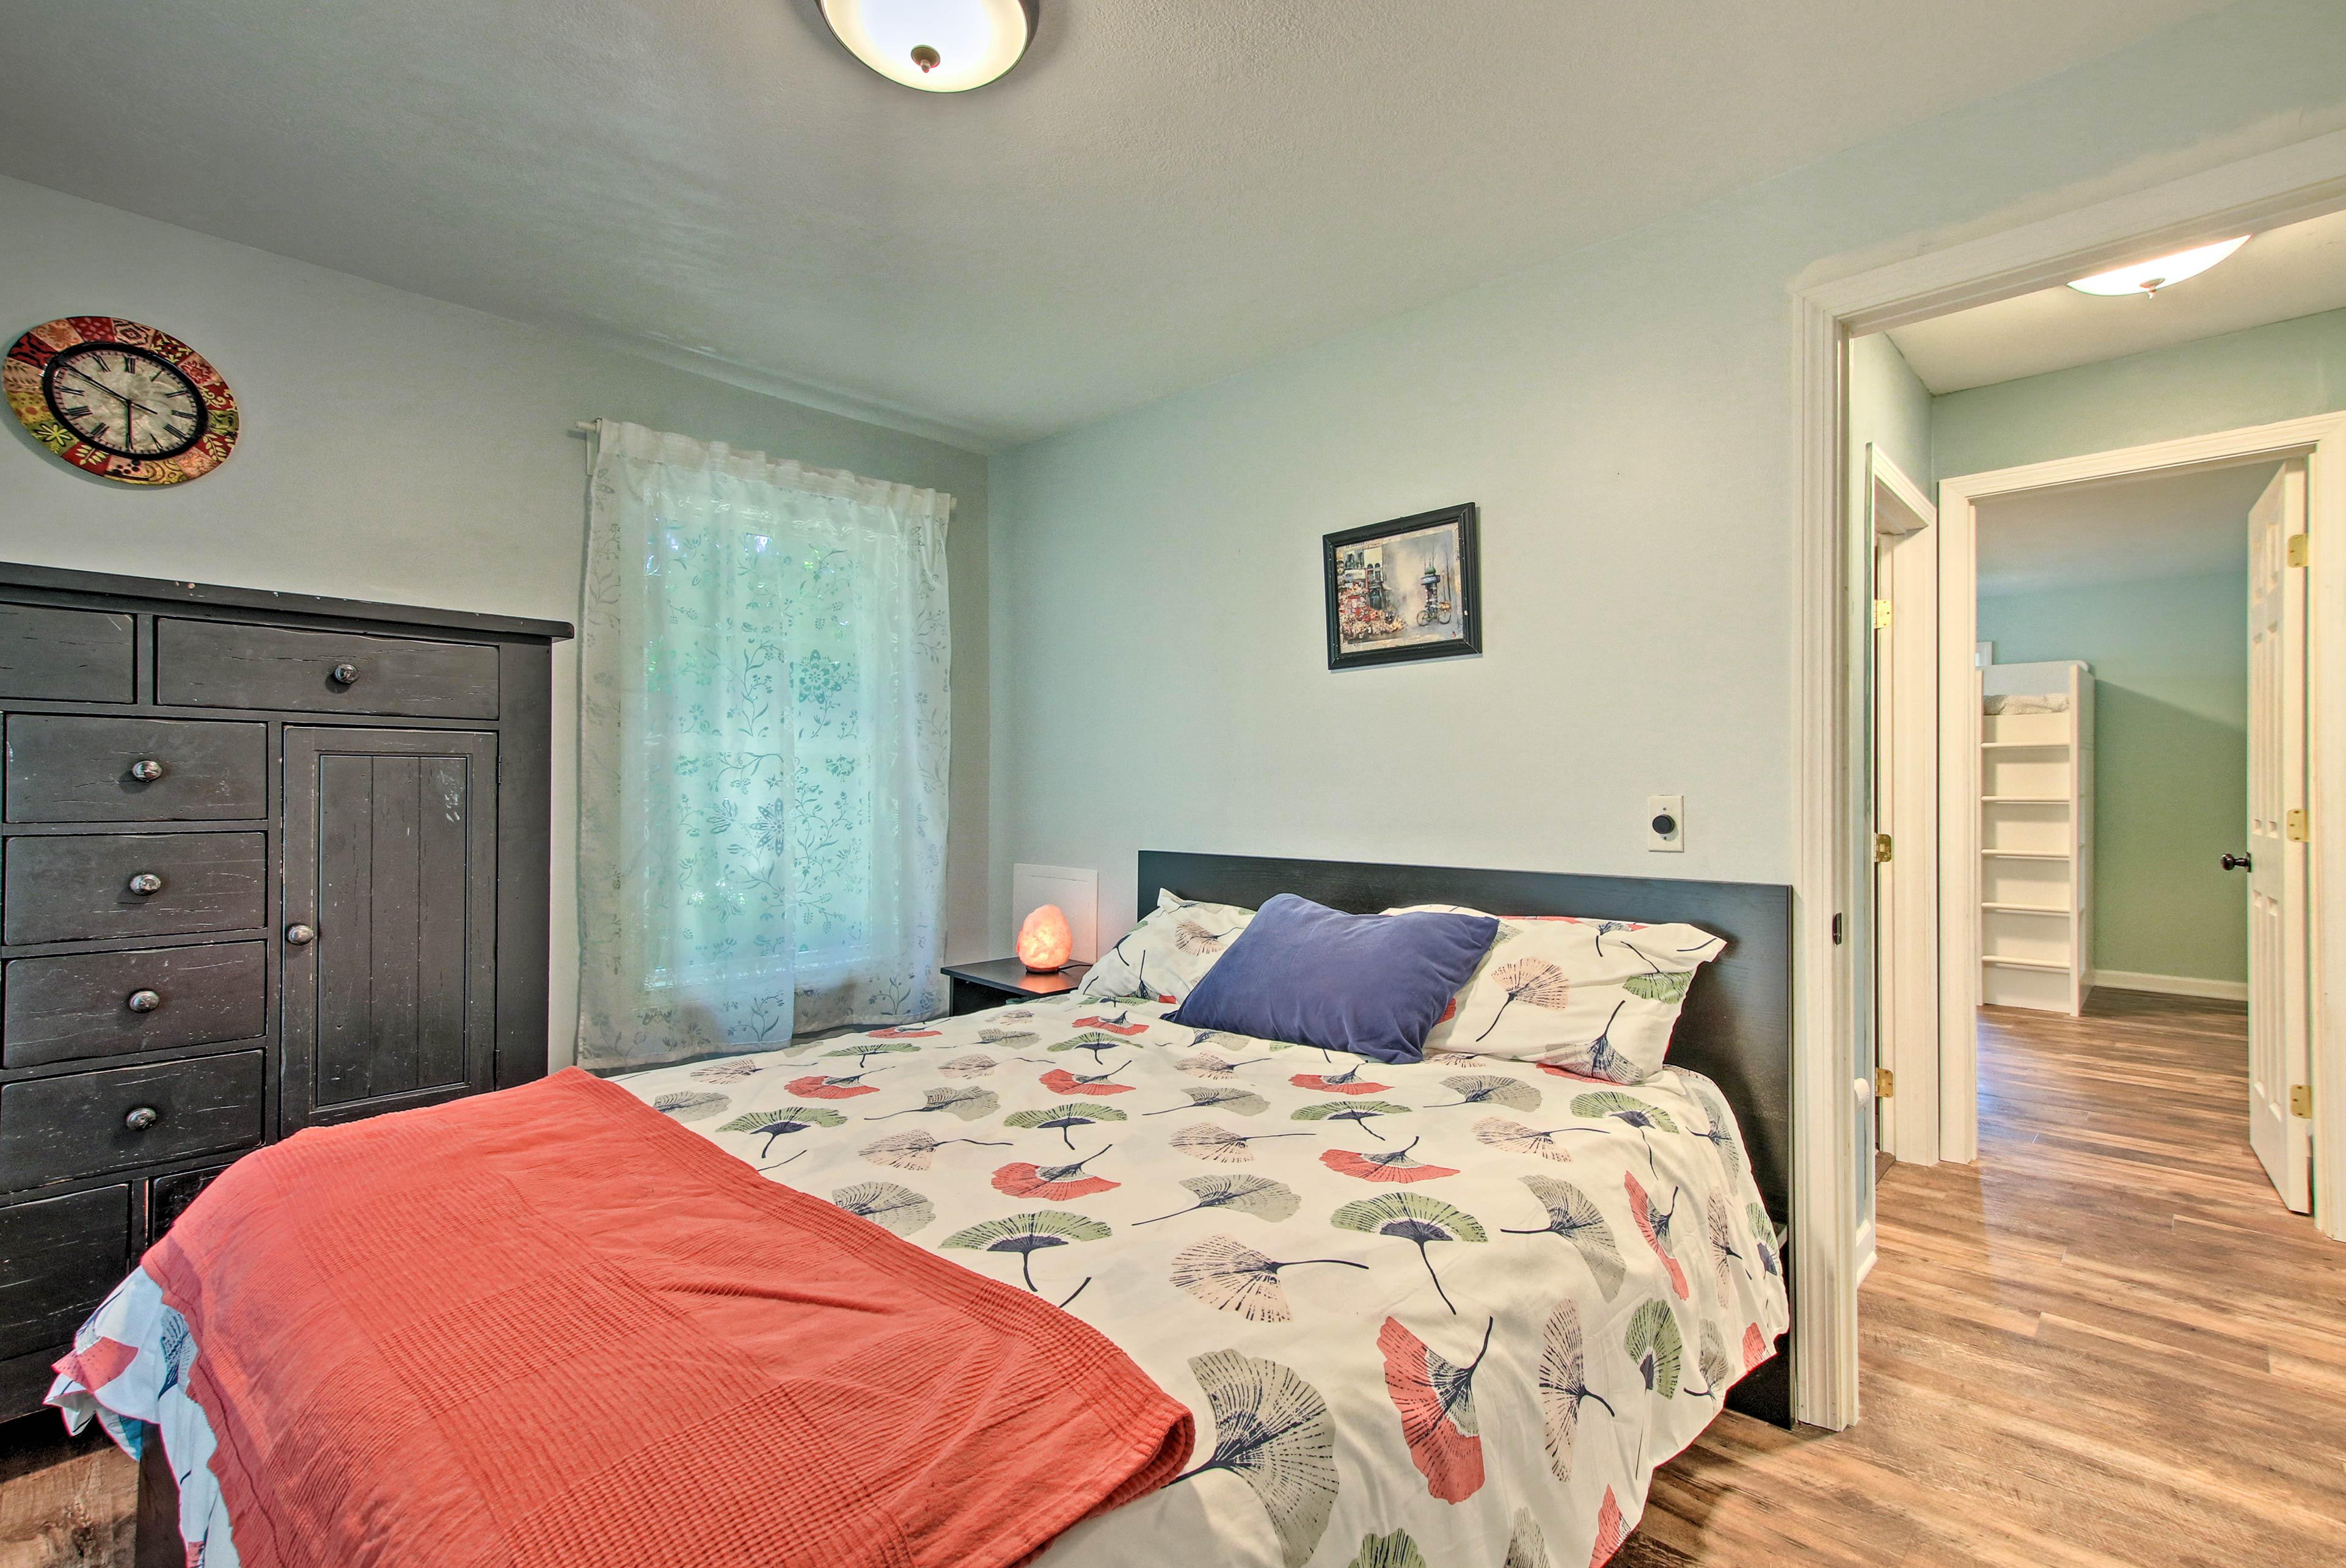 Make yourself at home in the second bedroom with another queen-sized bed.